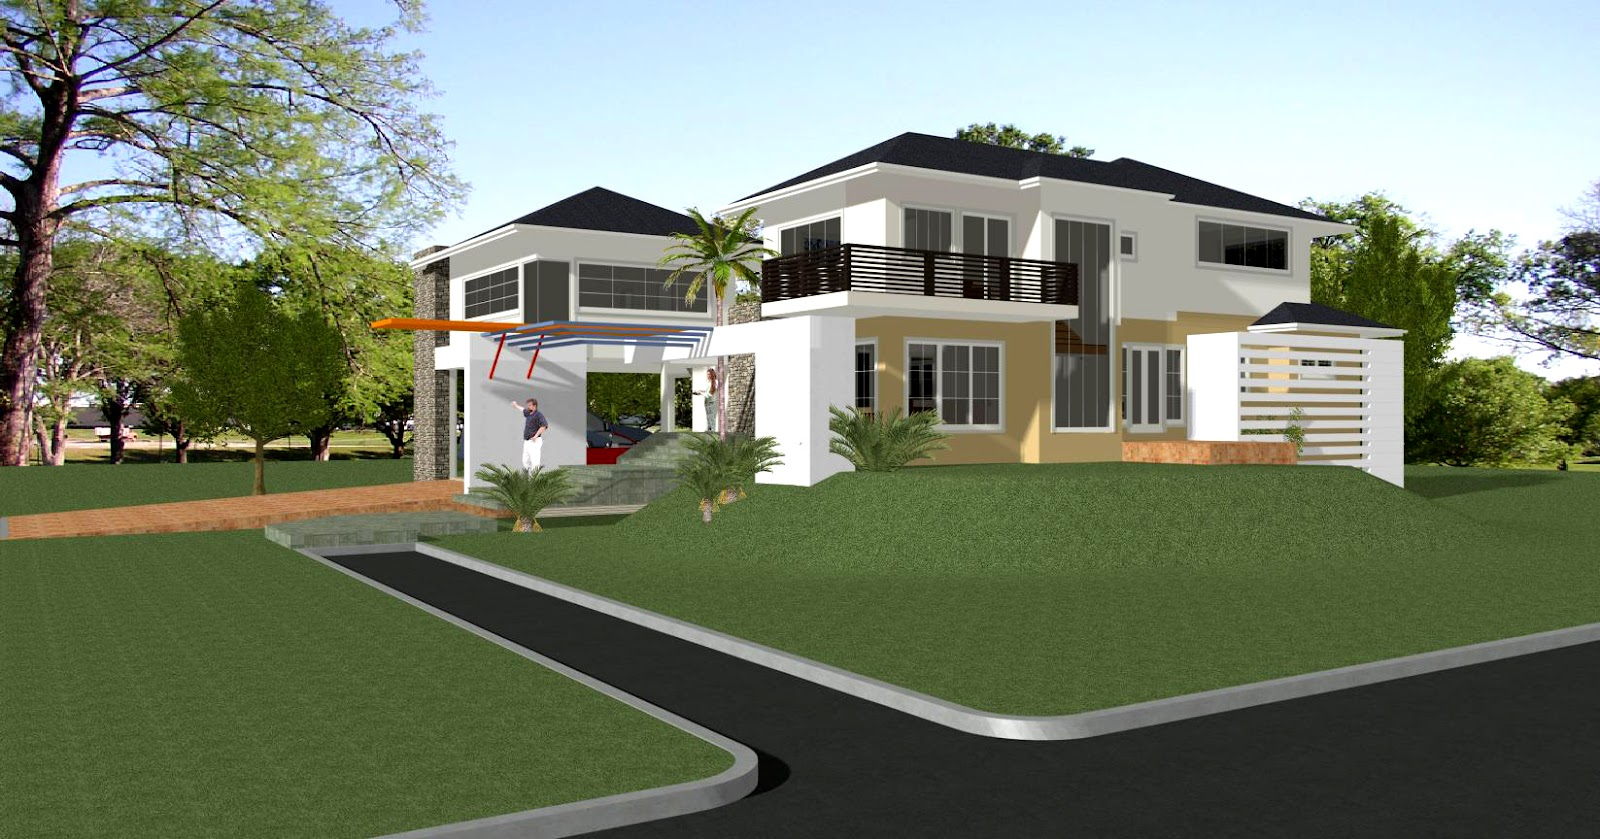 House designs in the philippines in iloilo by erecre group for Best house designs